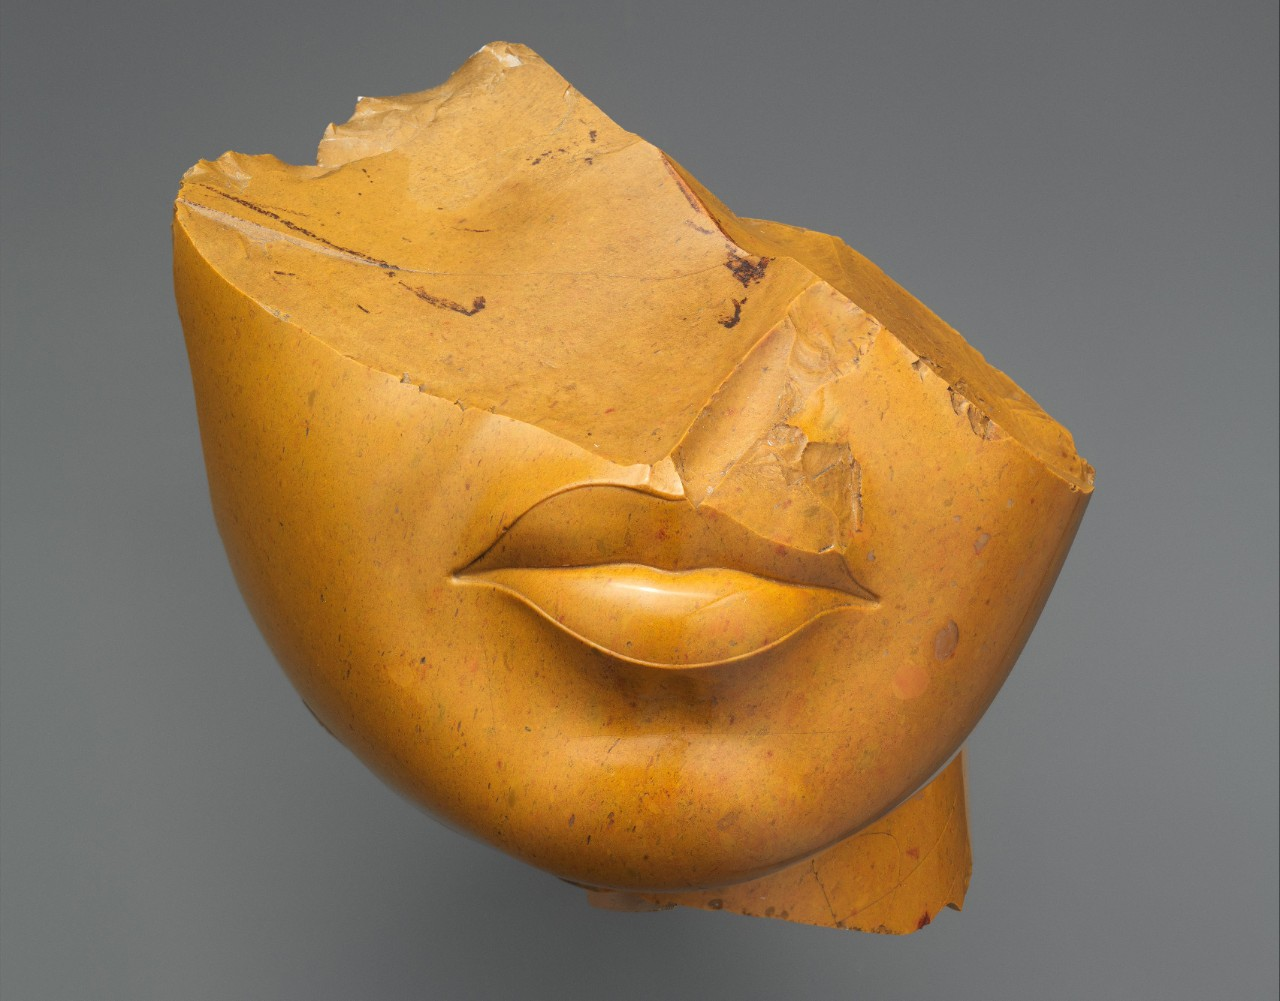 Broken sculpture of a woman's face